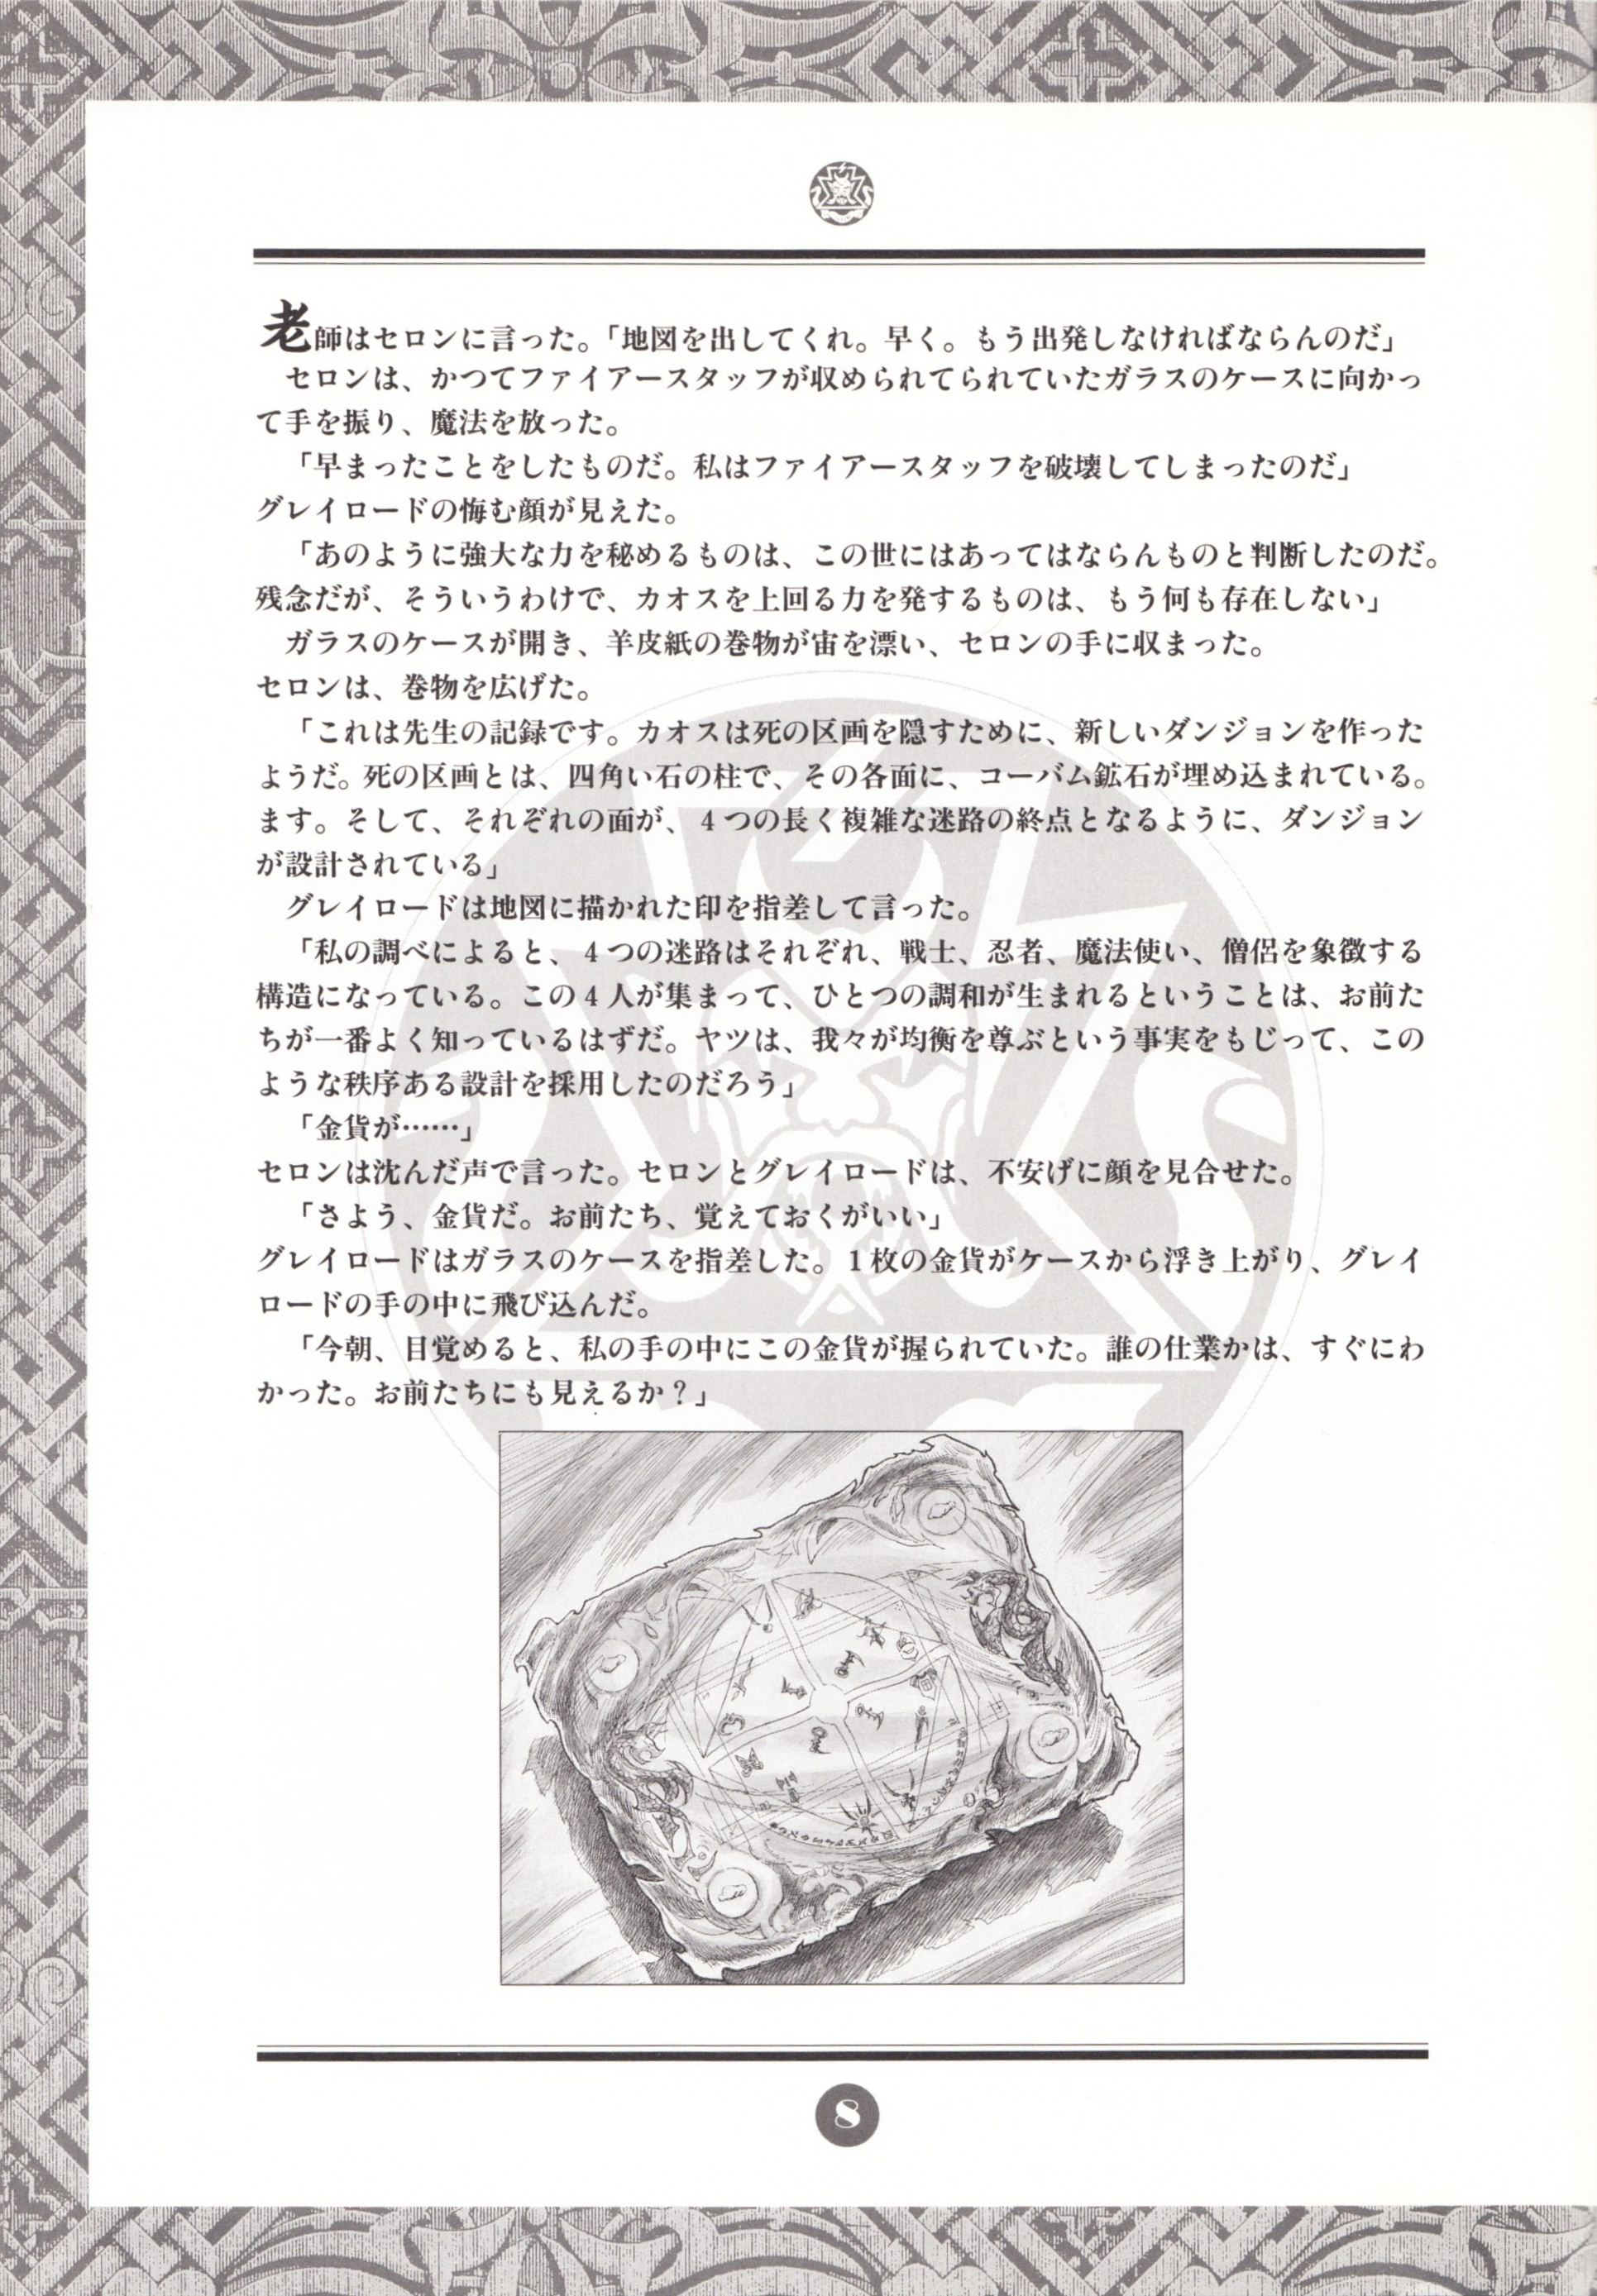 Game - Chaos Strikes Back - JP - FM Towns - The Guidance Of Adventure - Page 010 - Scan